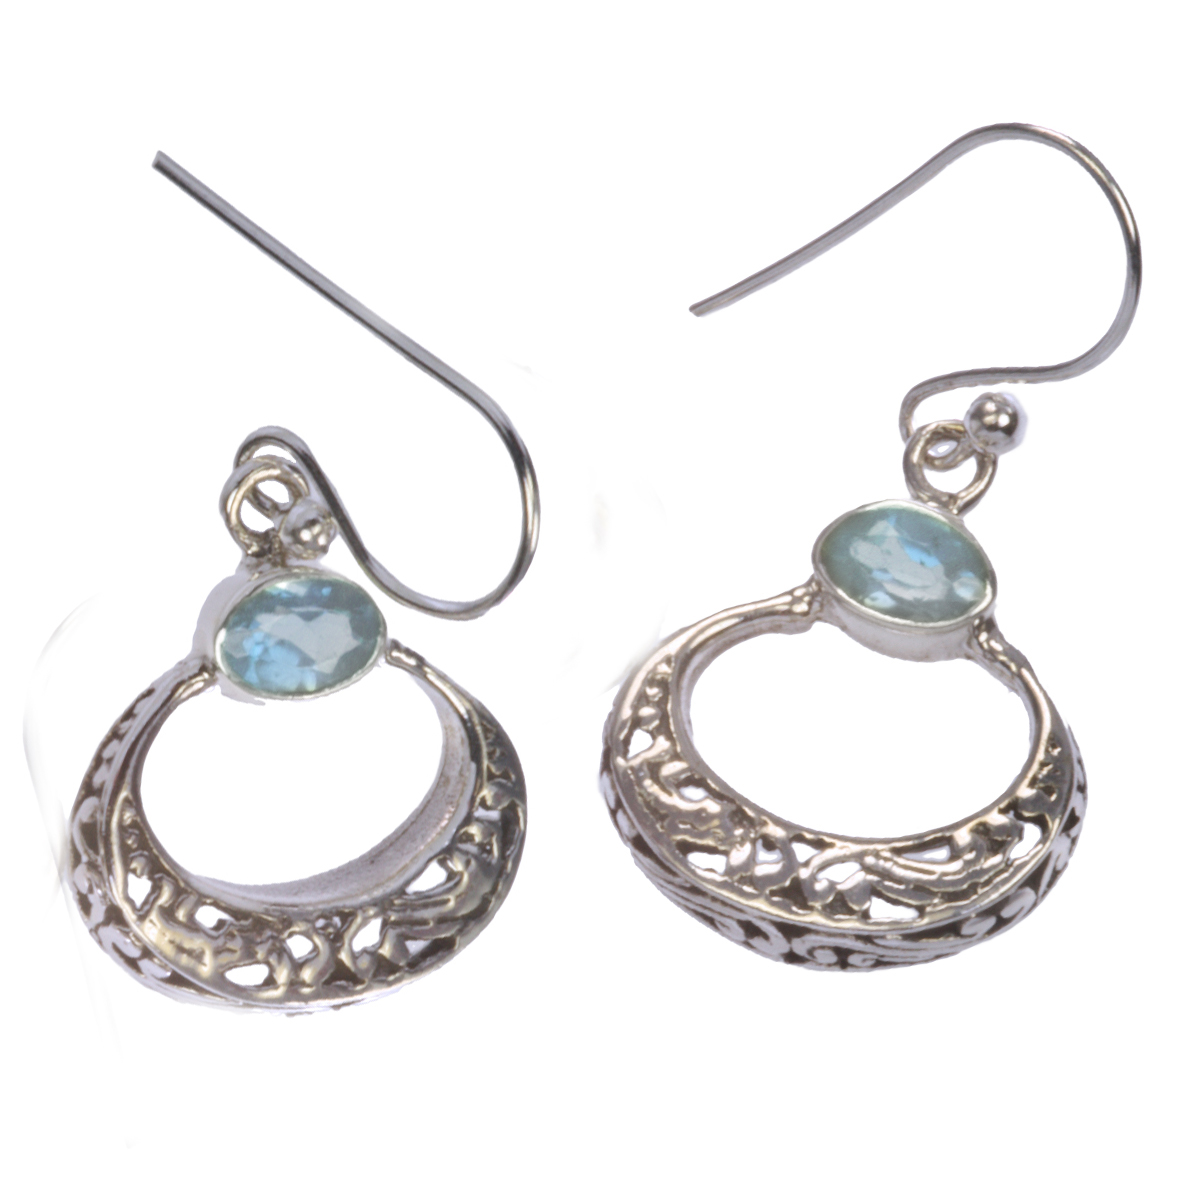 Sterling Silver Oval Curved Filigree Earrings